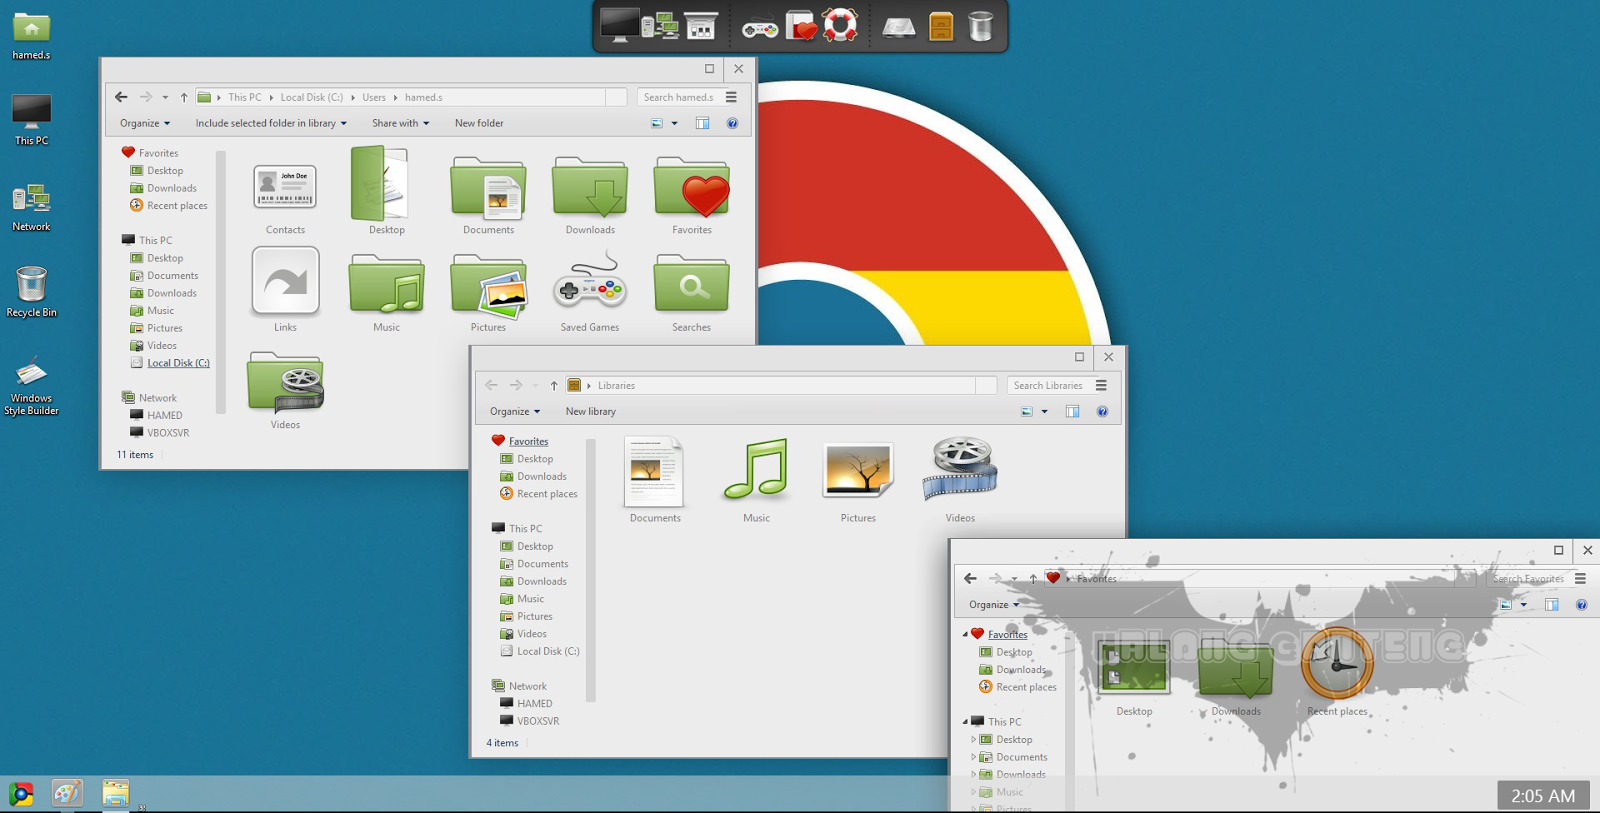 Chromium Skin Pack for win 8 Screenshot